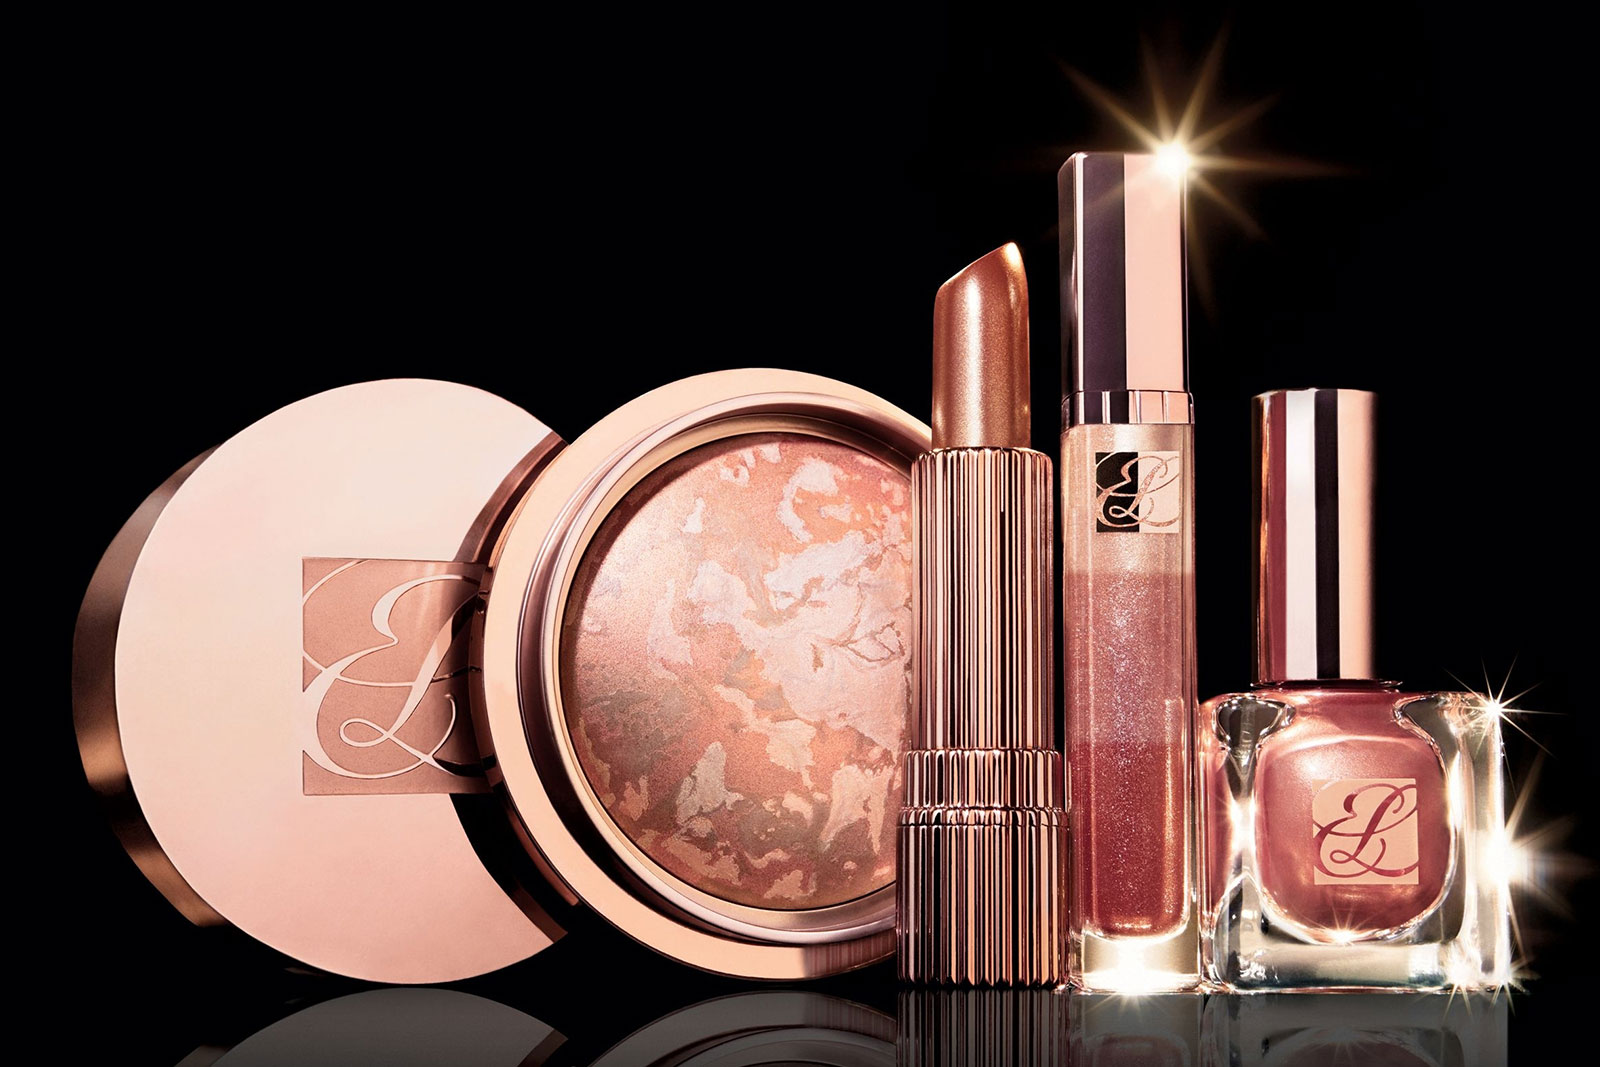 Fall Christian Wallpaper What To Expect When Estee Lauder El Reports Q4 Results